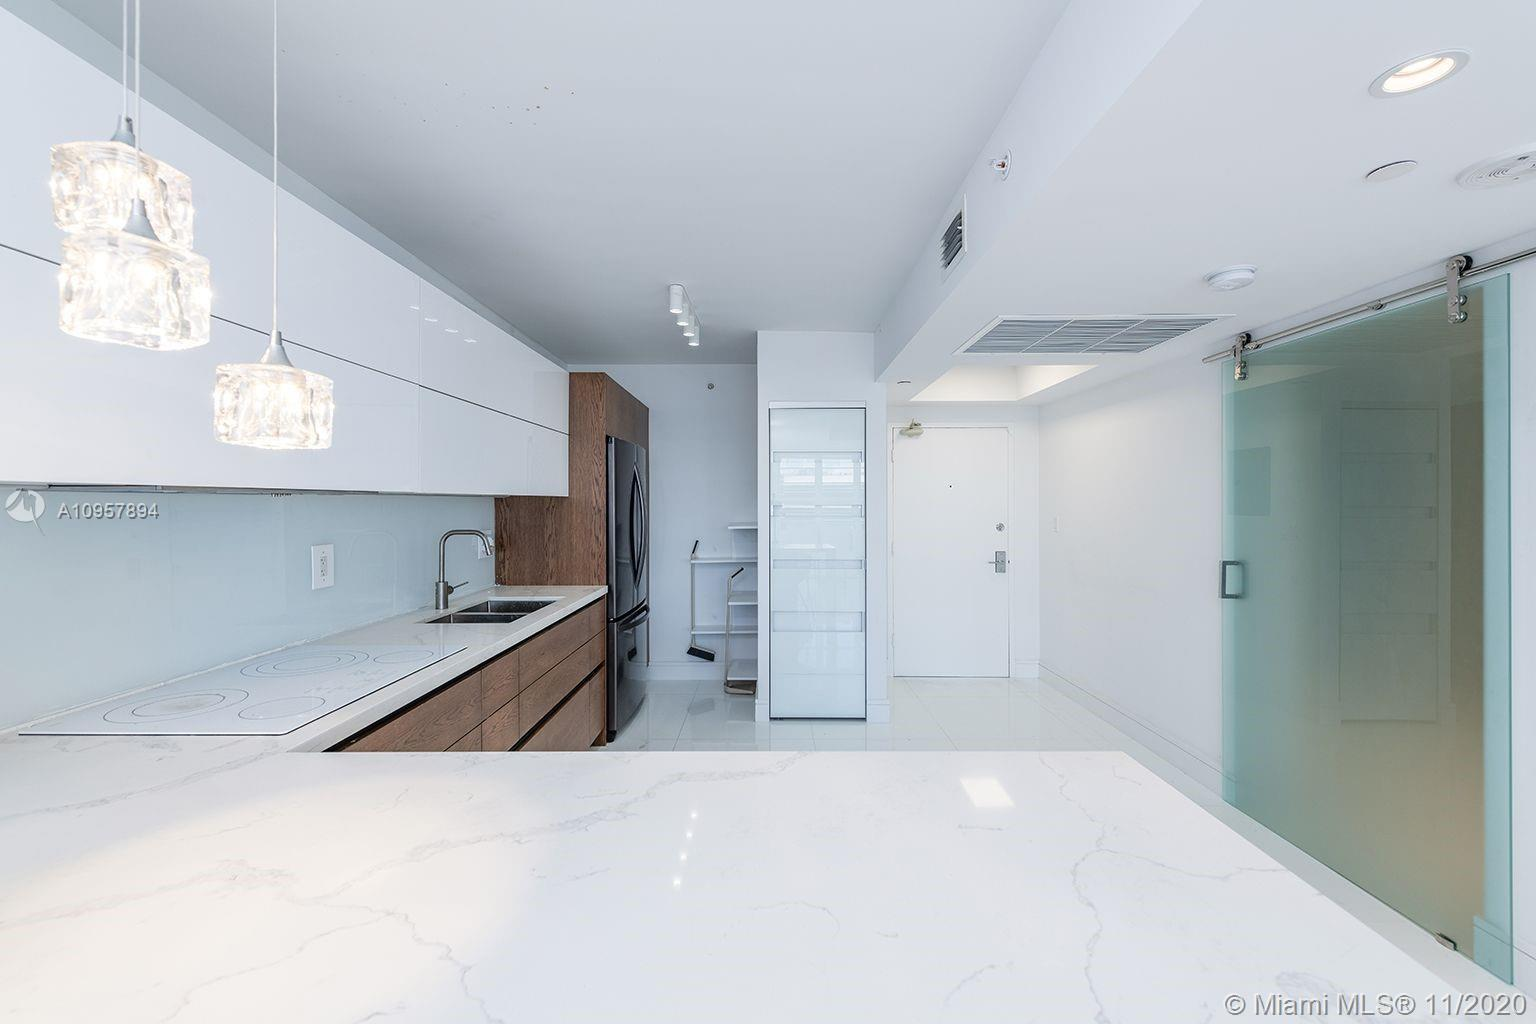 Completely Renovated luxury finishes ,kitchen fully equipped Italian style with marble counter top,